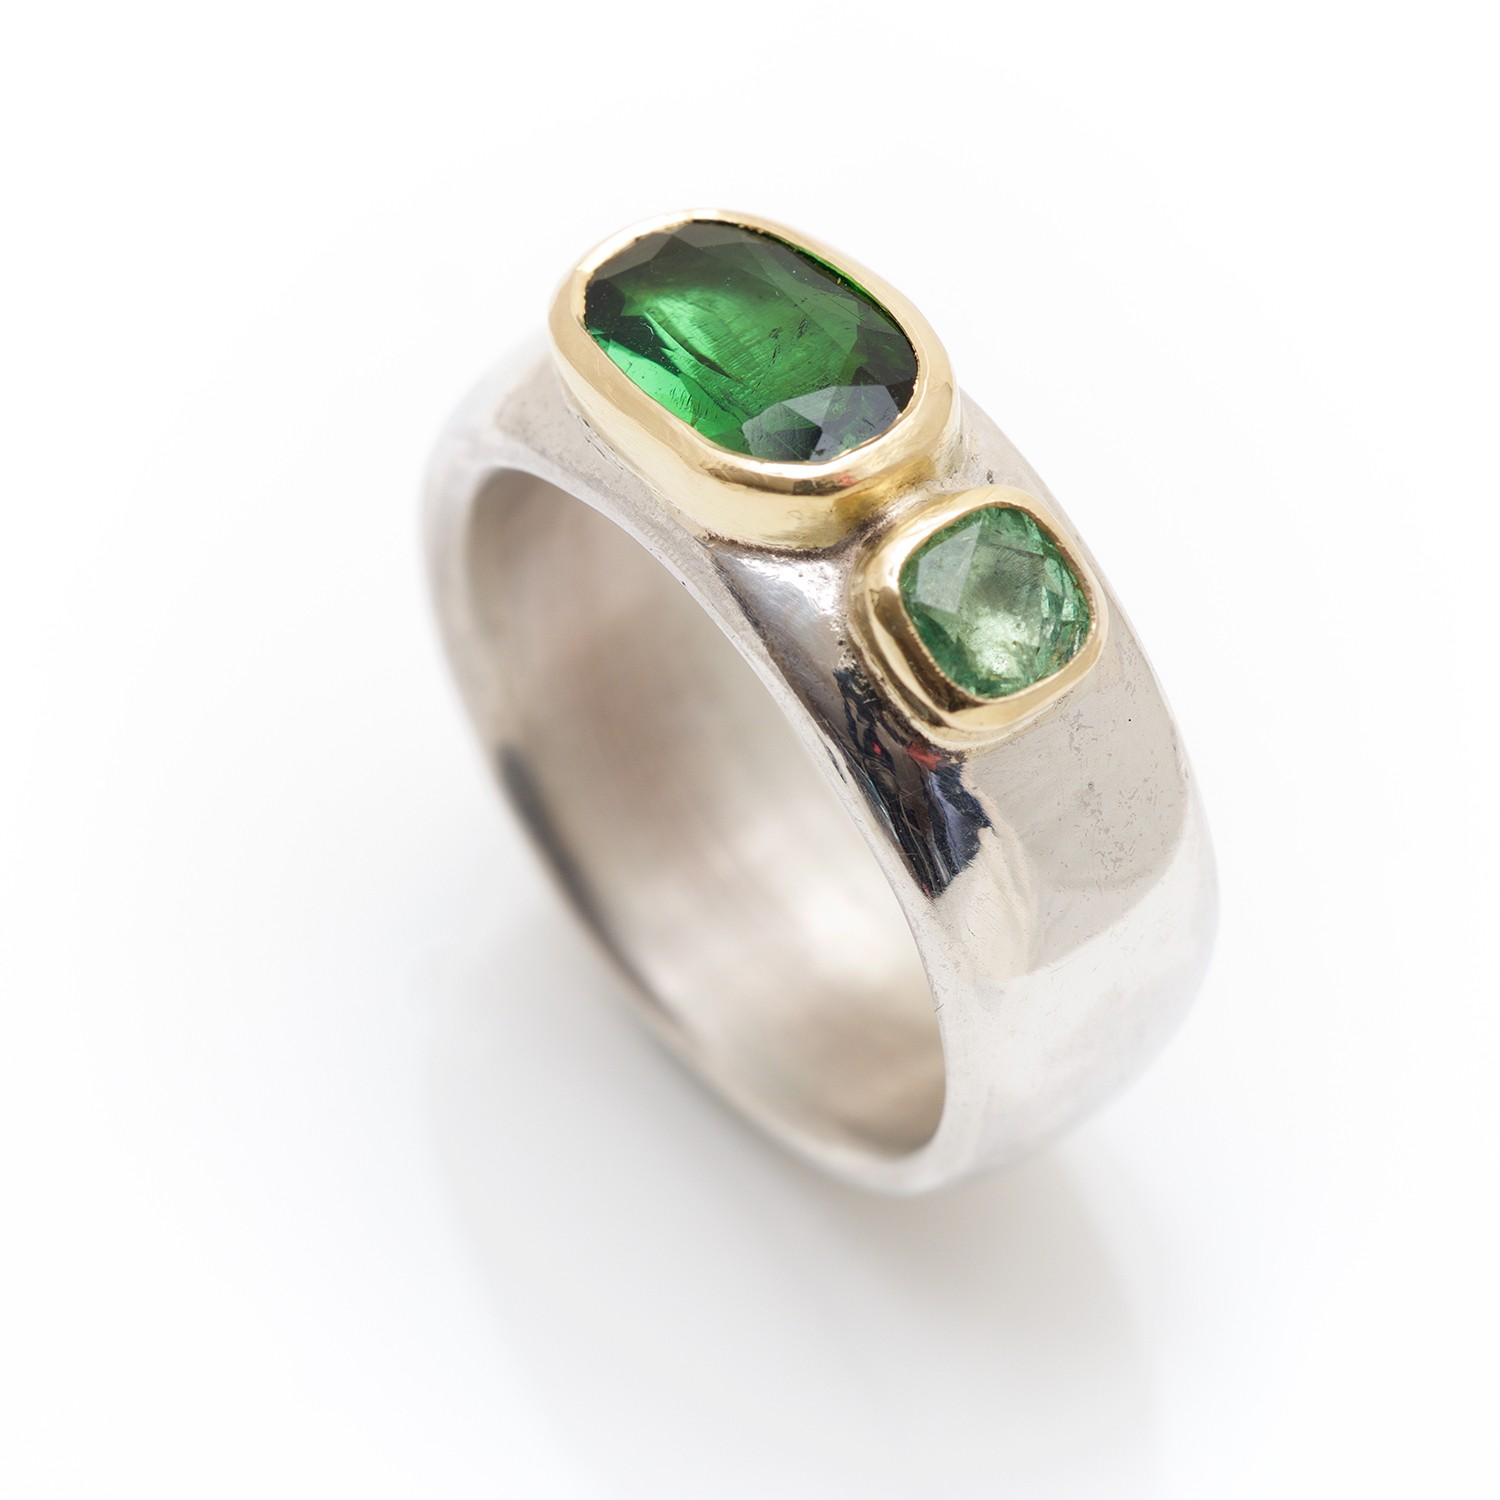 rings zahm gold ring philip with tw in tsavorite diamonds green yellow garnet